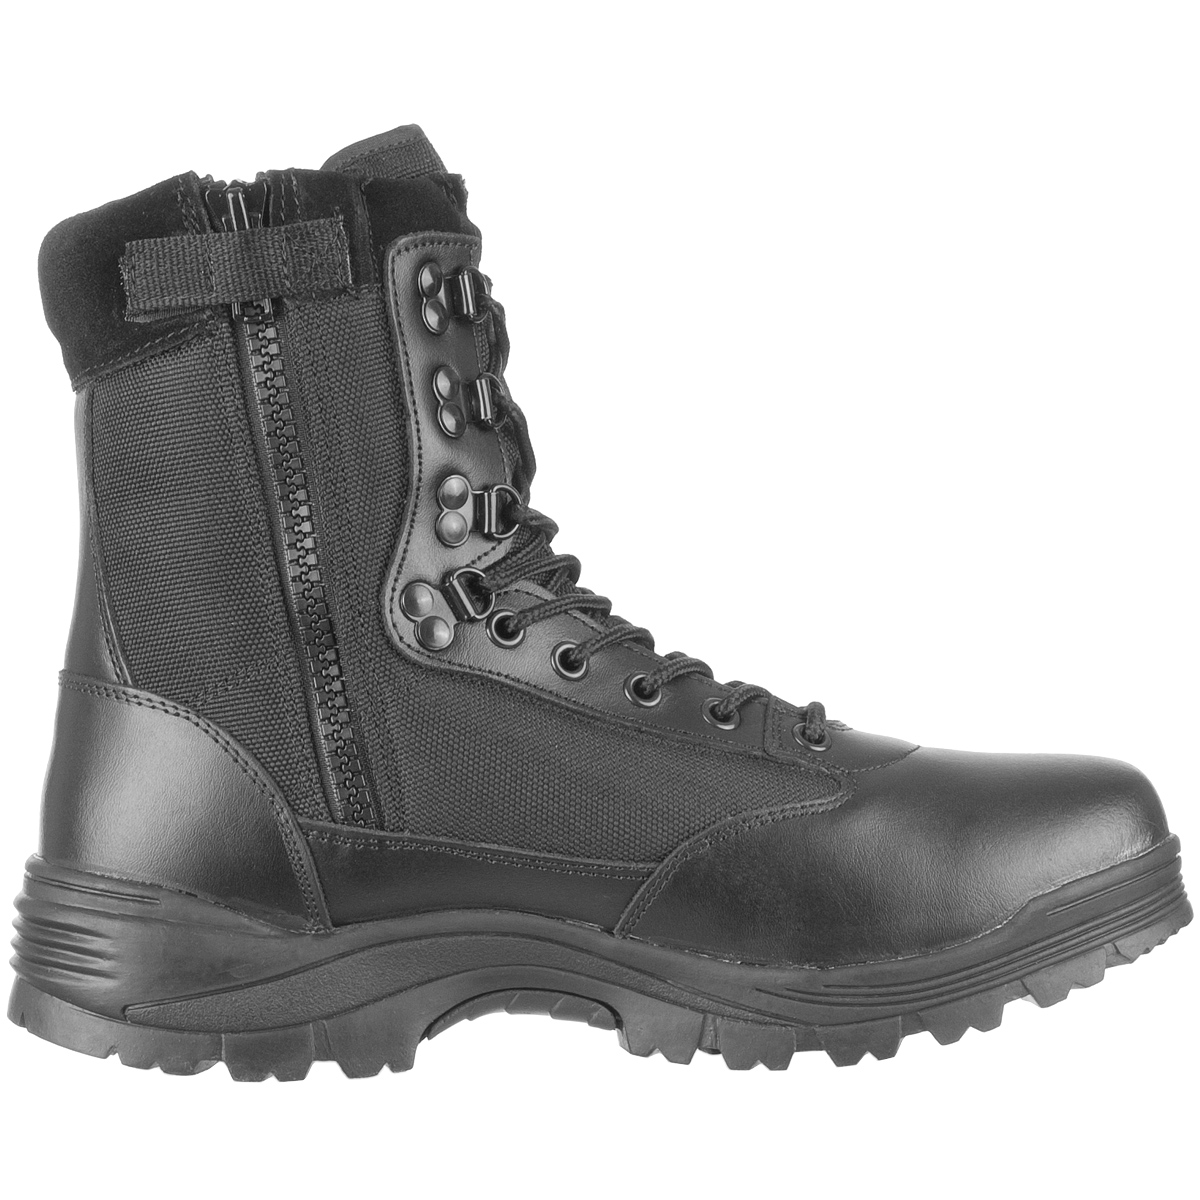 Tactical Side Zip Security Police Combat Boots Army Mens